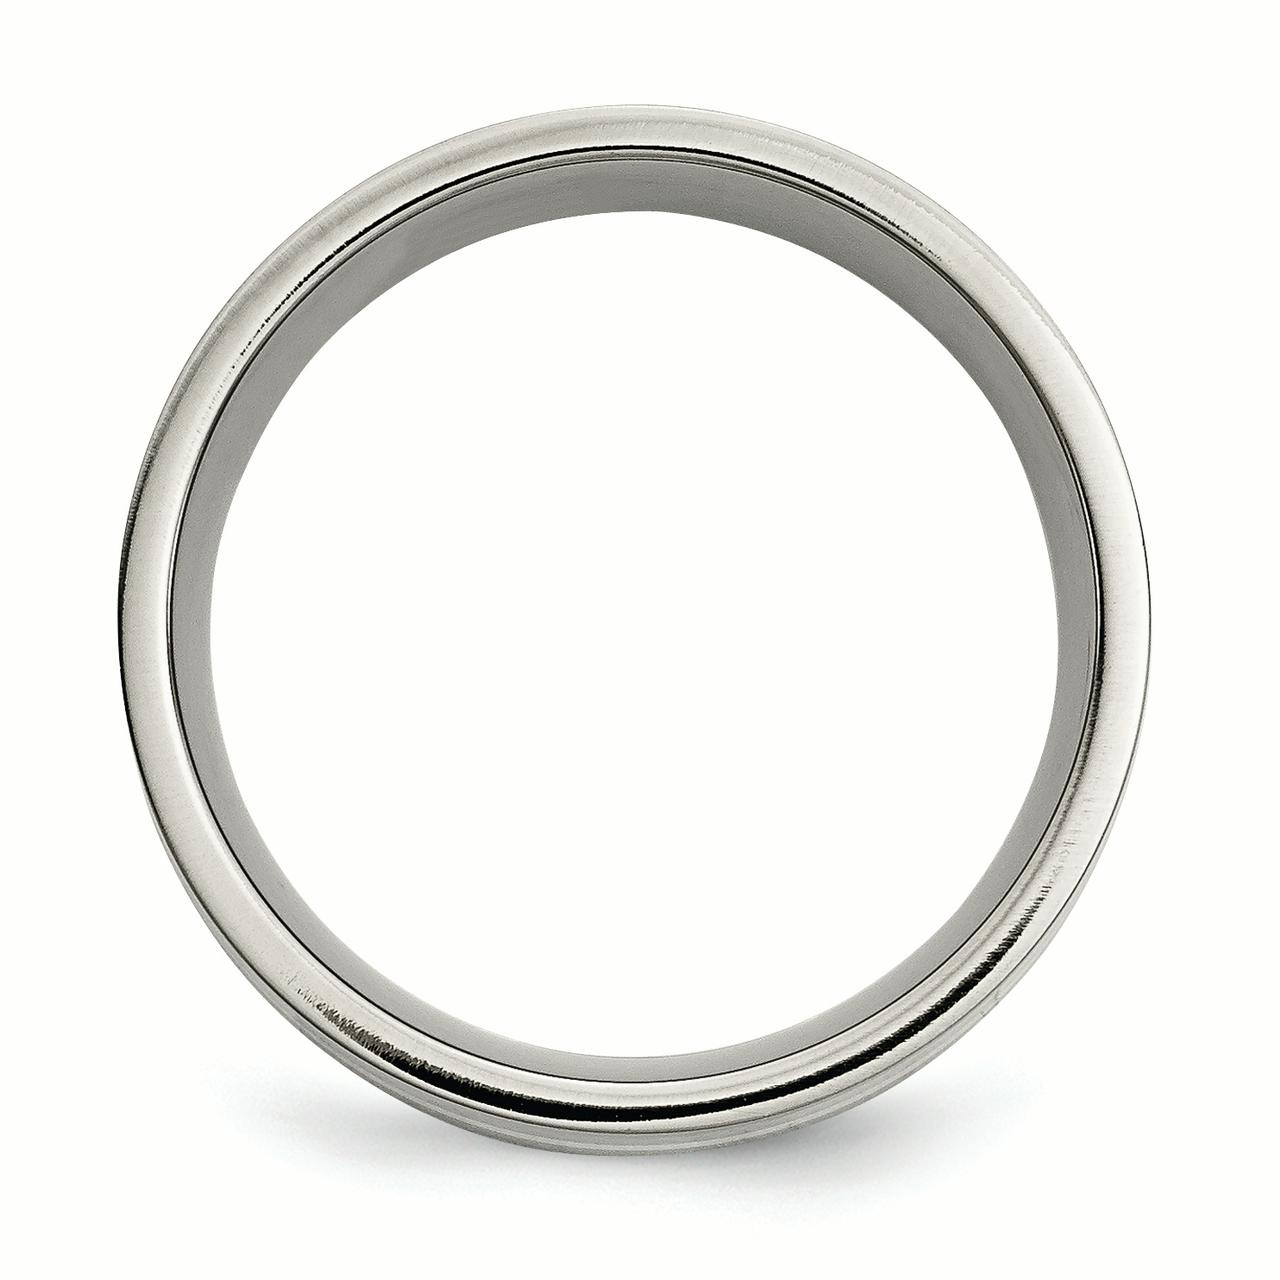 Titanium 925 Sterling Silver Inlay Flat 8mm Wedding Ring Band Size 7.00 Precious Metal Fine Jewelry Gifts For Women For Her - image 2 de 6